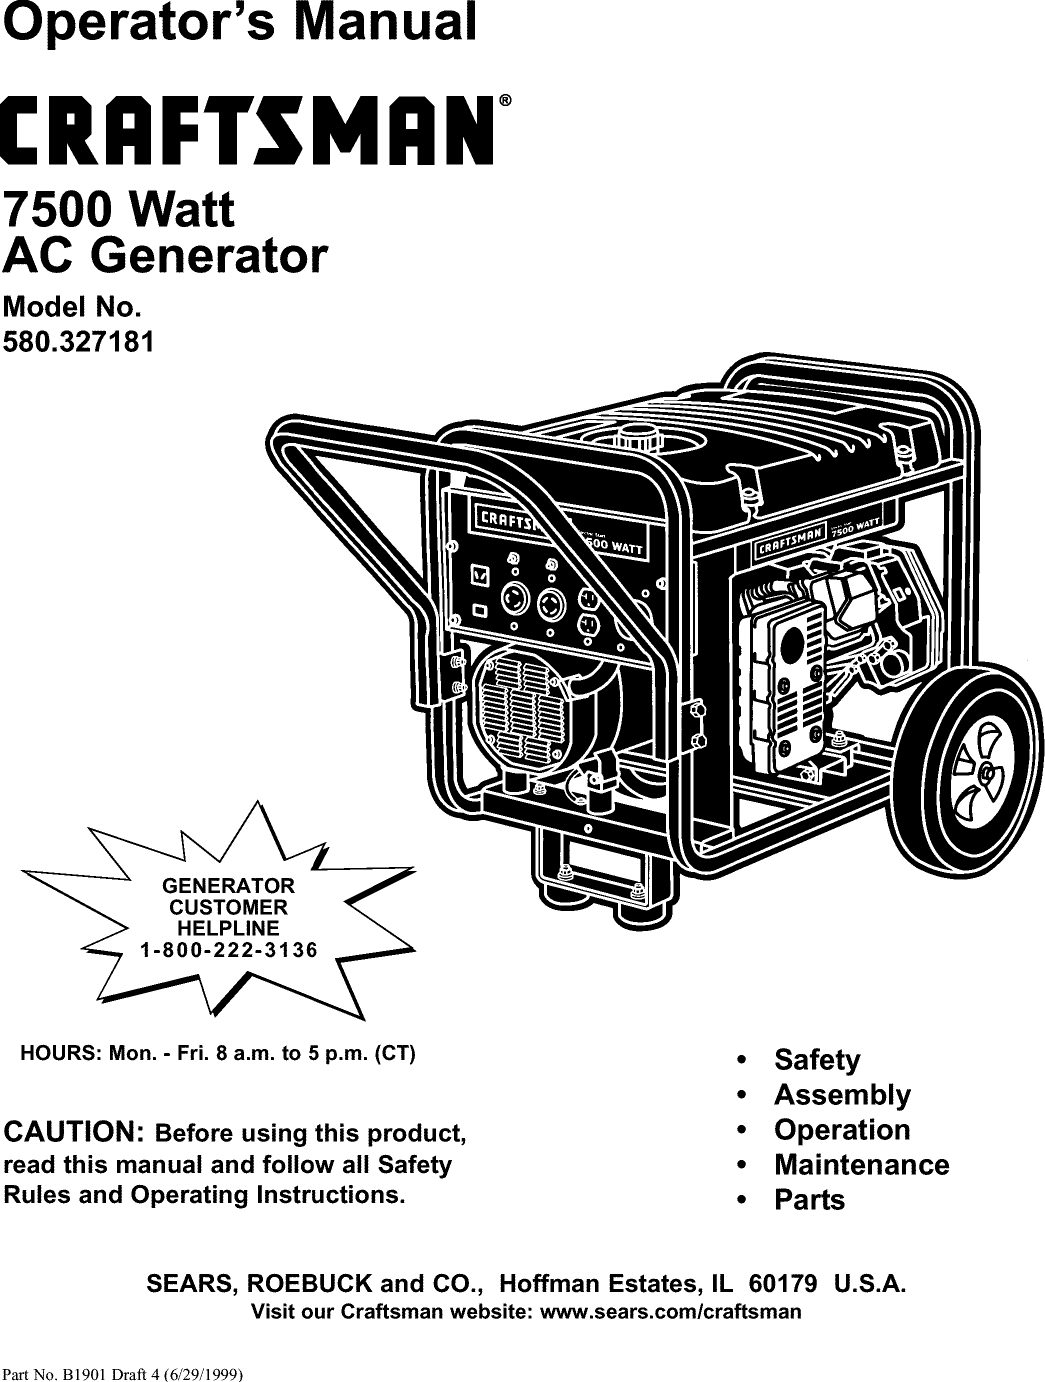 Craftsman 580327181 User Manual 7500 WATT AC GENERATOR